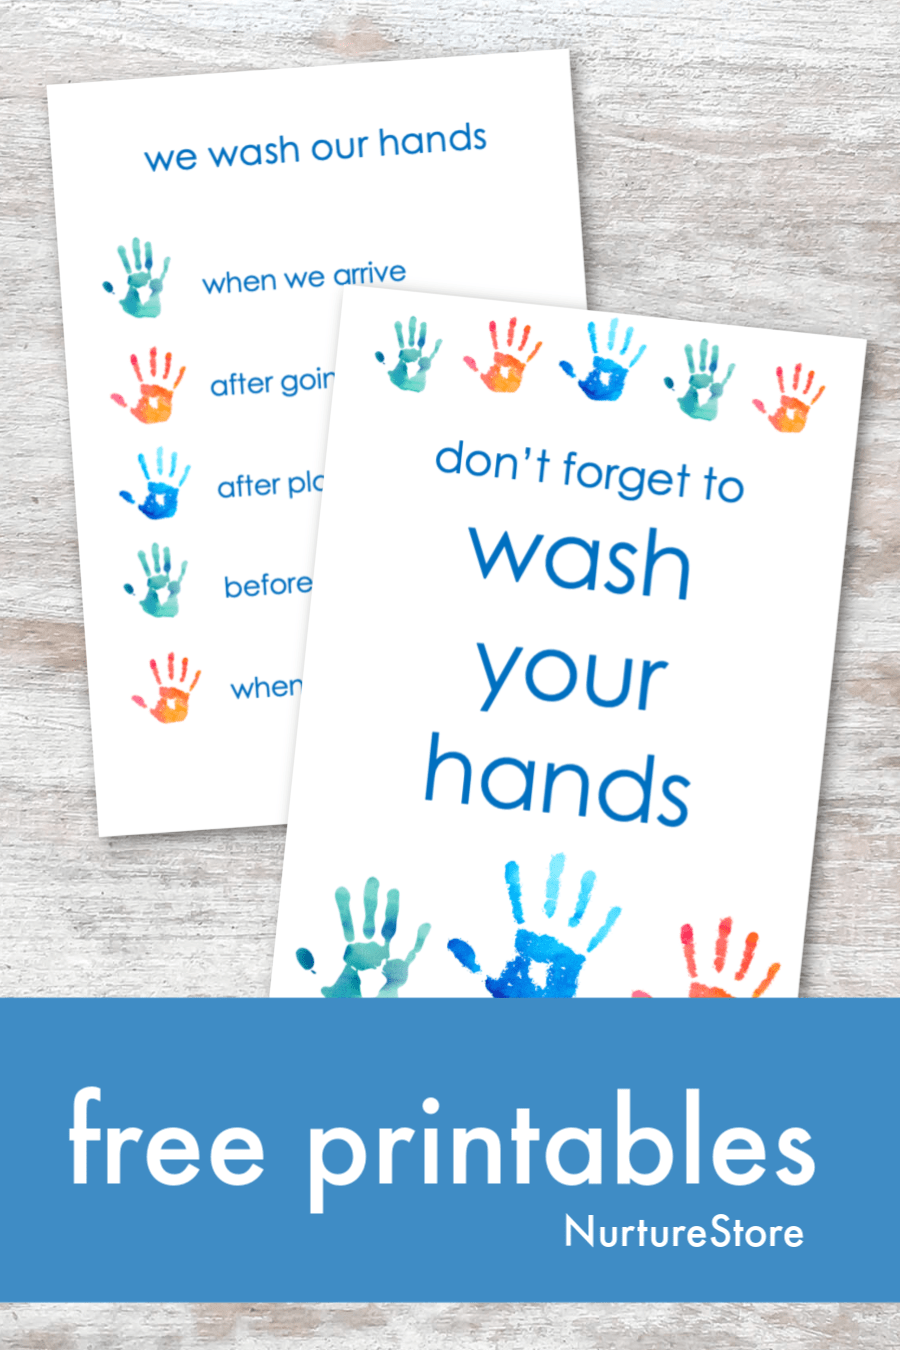 Free Printable Hand Washing Poster And Guide For Children Nurturestore Hand Washing Poster Free Printables Wash Hands Printable [ 1350 x 900 Pixel ]